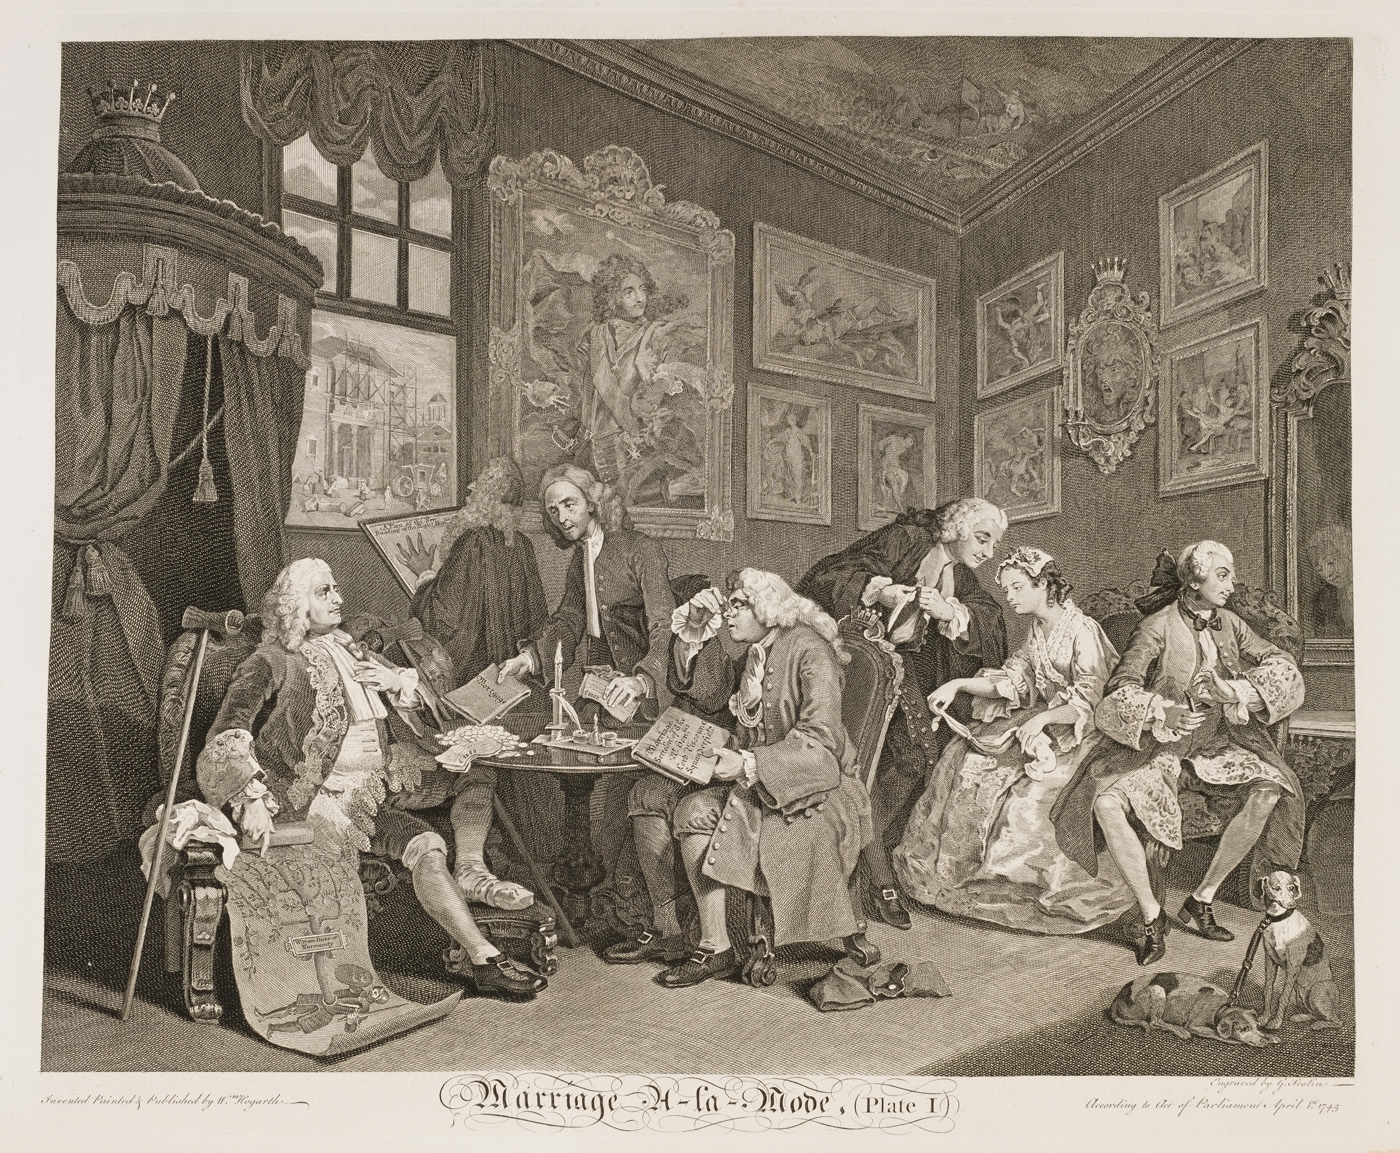 William Hogarth - Marriage à-la-mode plate 1